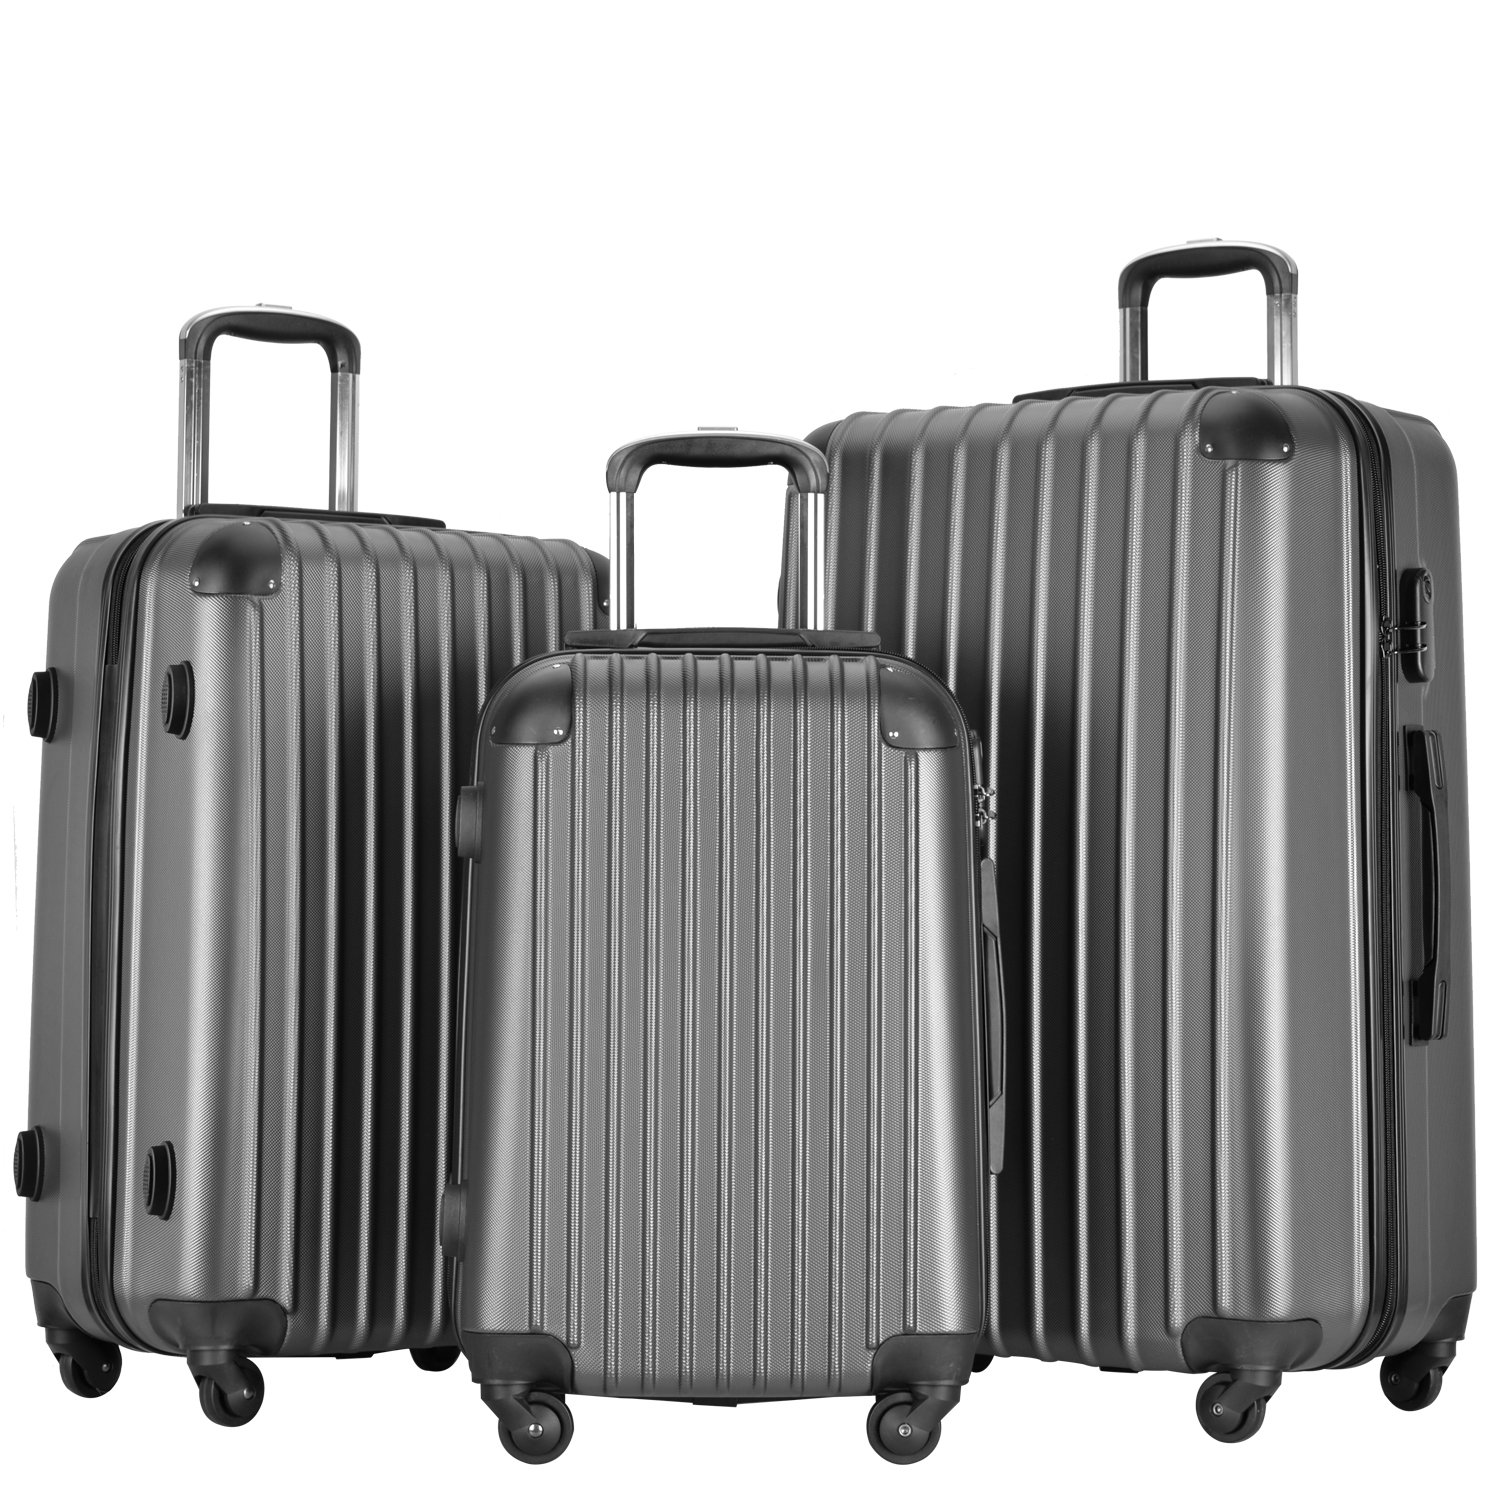 Resena Luggage 3 Piece Set Suitcase Spinner Hardshell Lightweight (Grey) by Resena